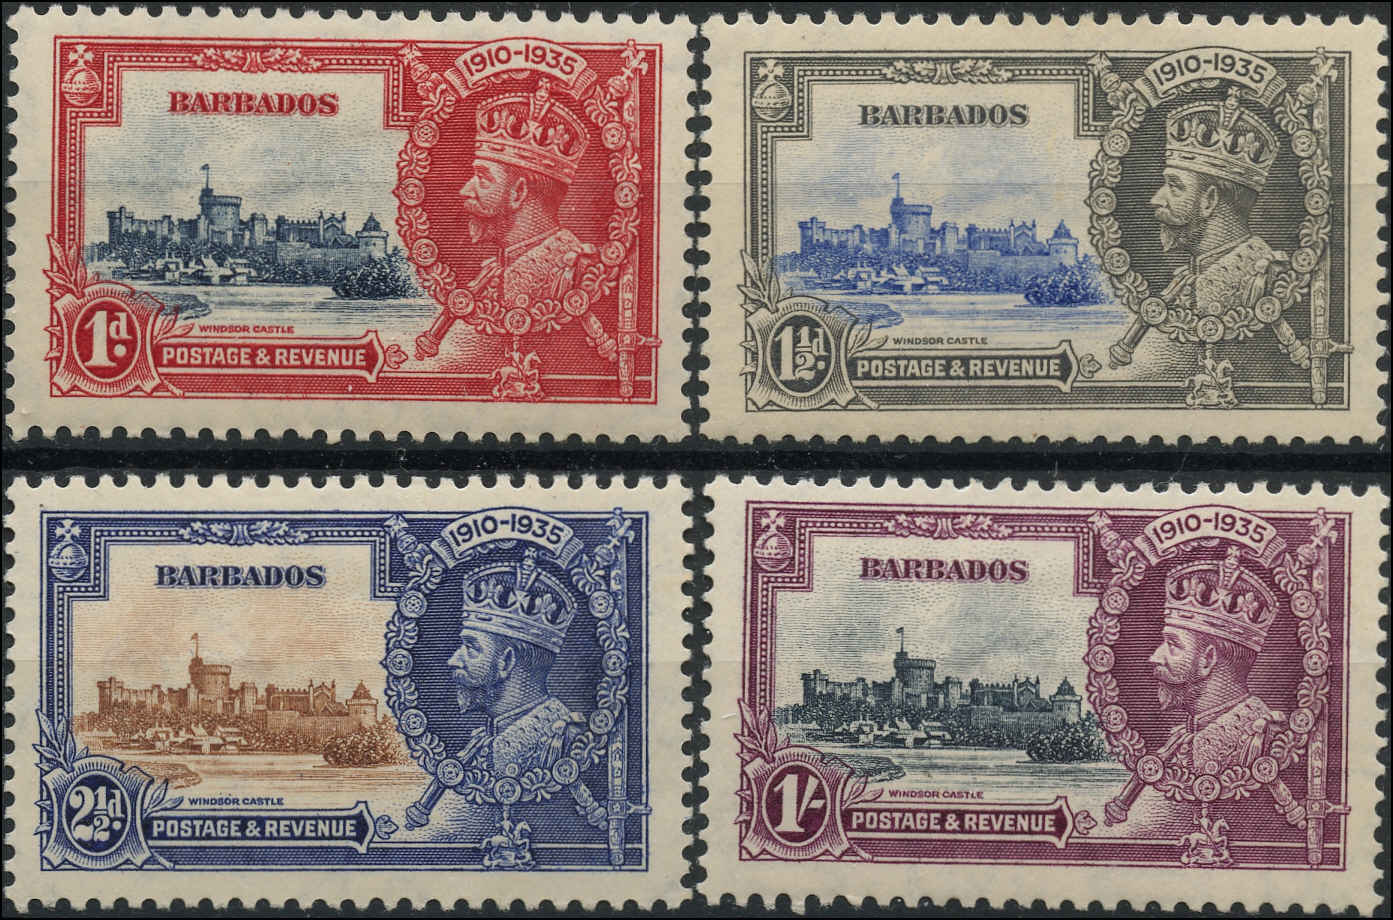 Barbados Stamp, Scott #186-189, F+, MH